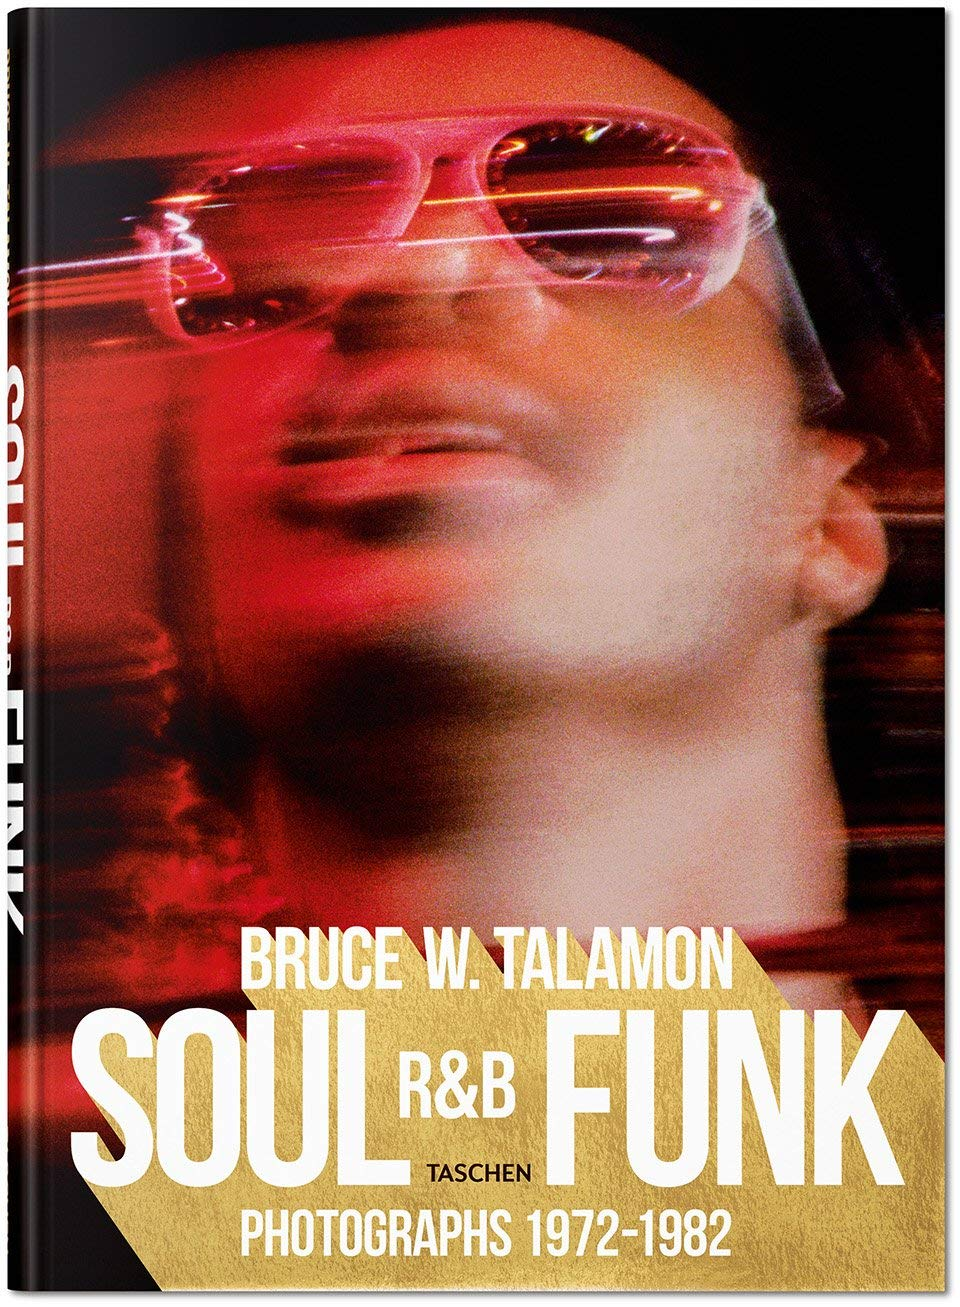 Bruce W. Talamon: Soul. R&B. Funk. Photographs 1972-1982